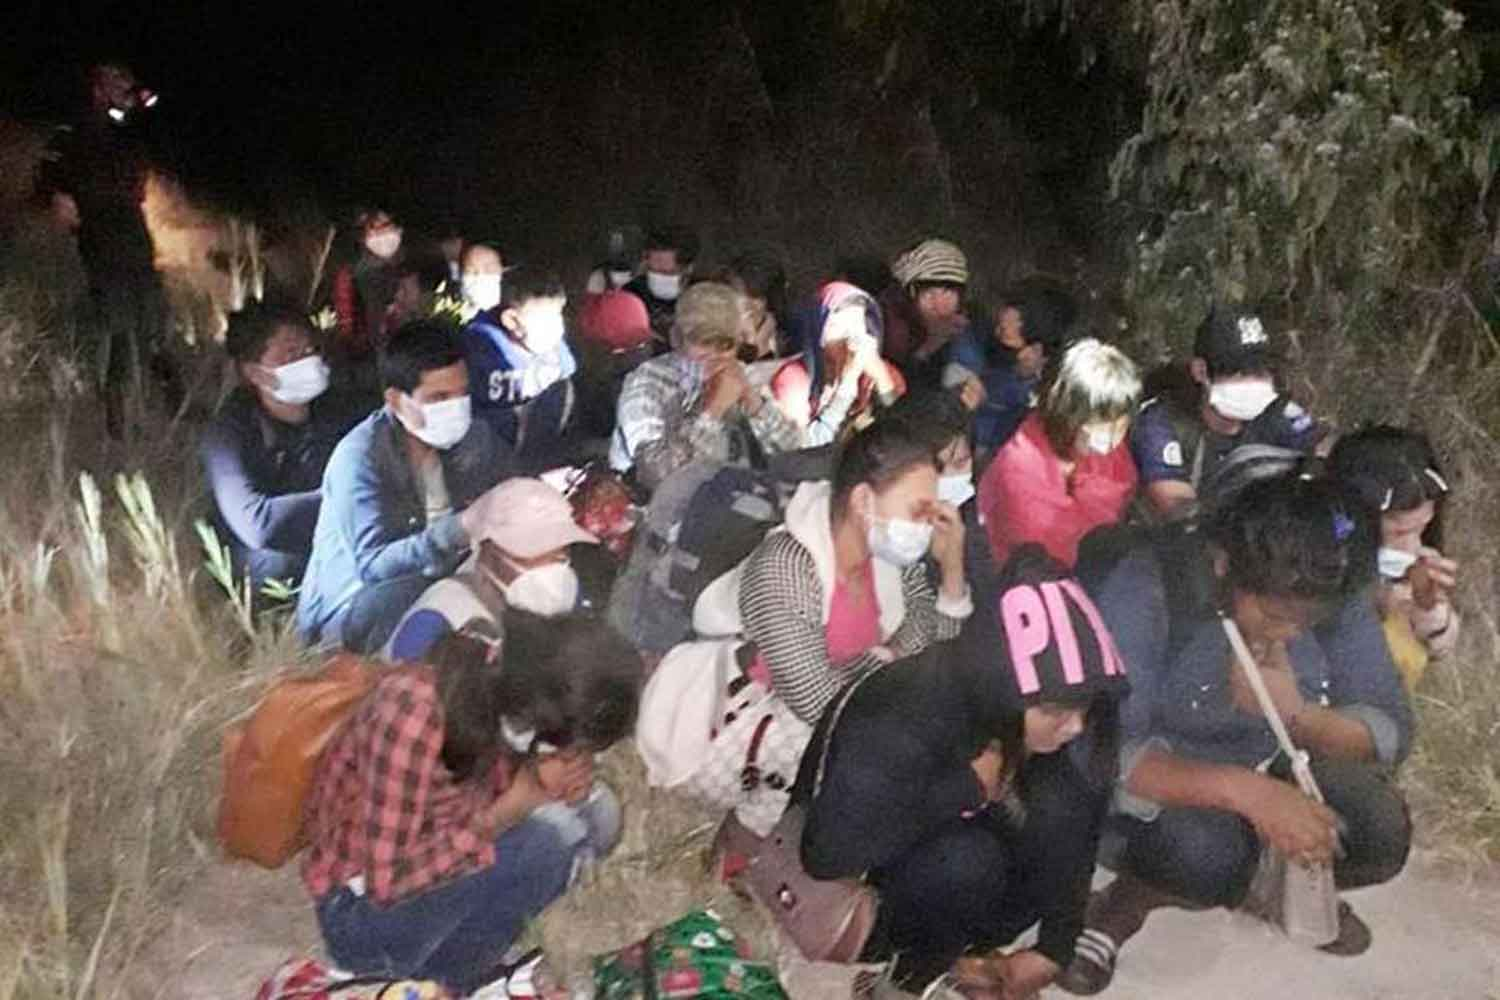 Twenty-five illegal migrants are arrested in Muang district of Kanchanaburi on Dec 12. (Photo: Piyarat Chongcharoen)